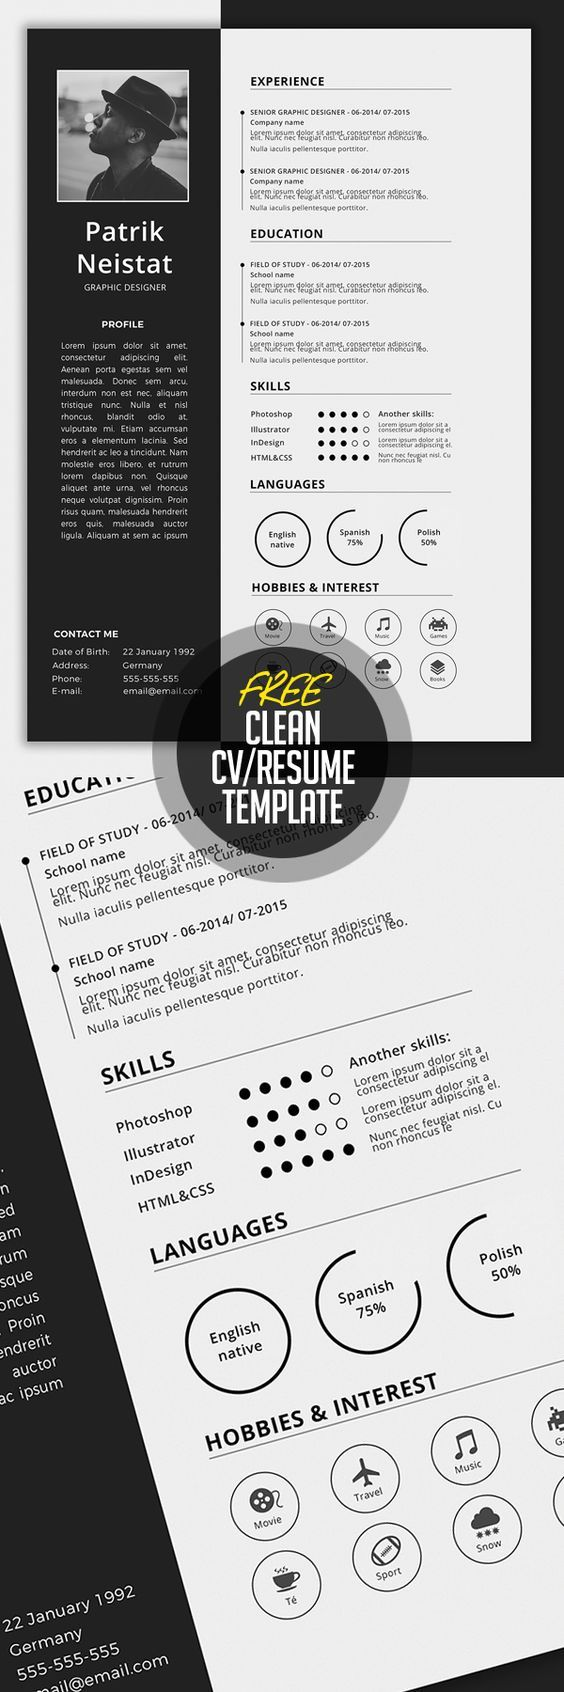 Simple CV/Resume Template Free Download